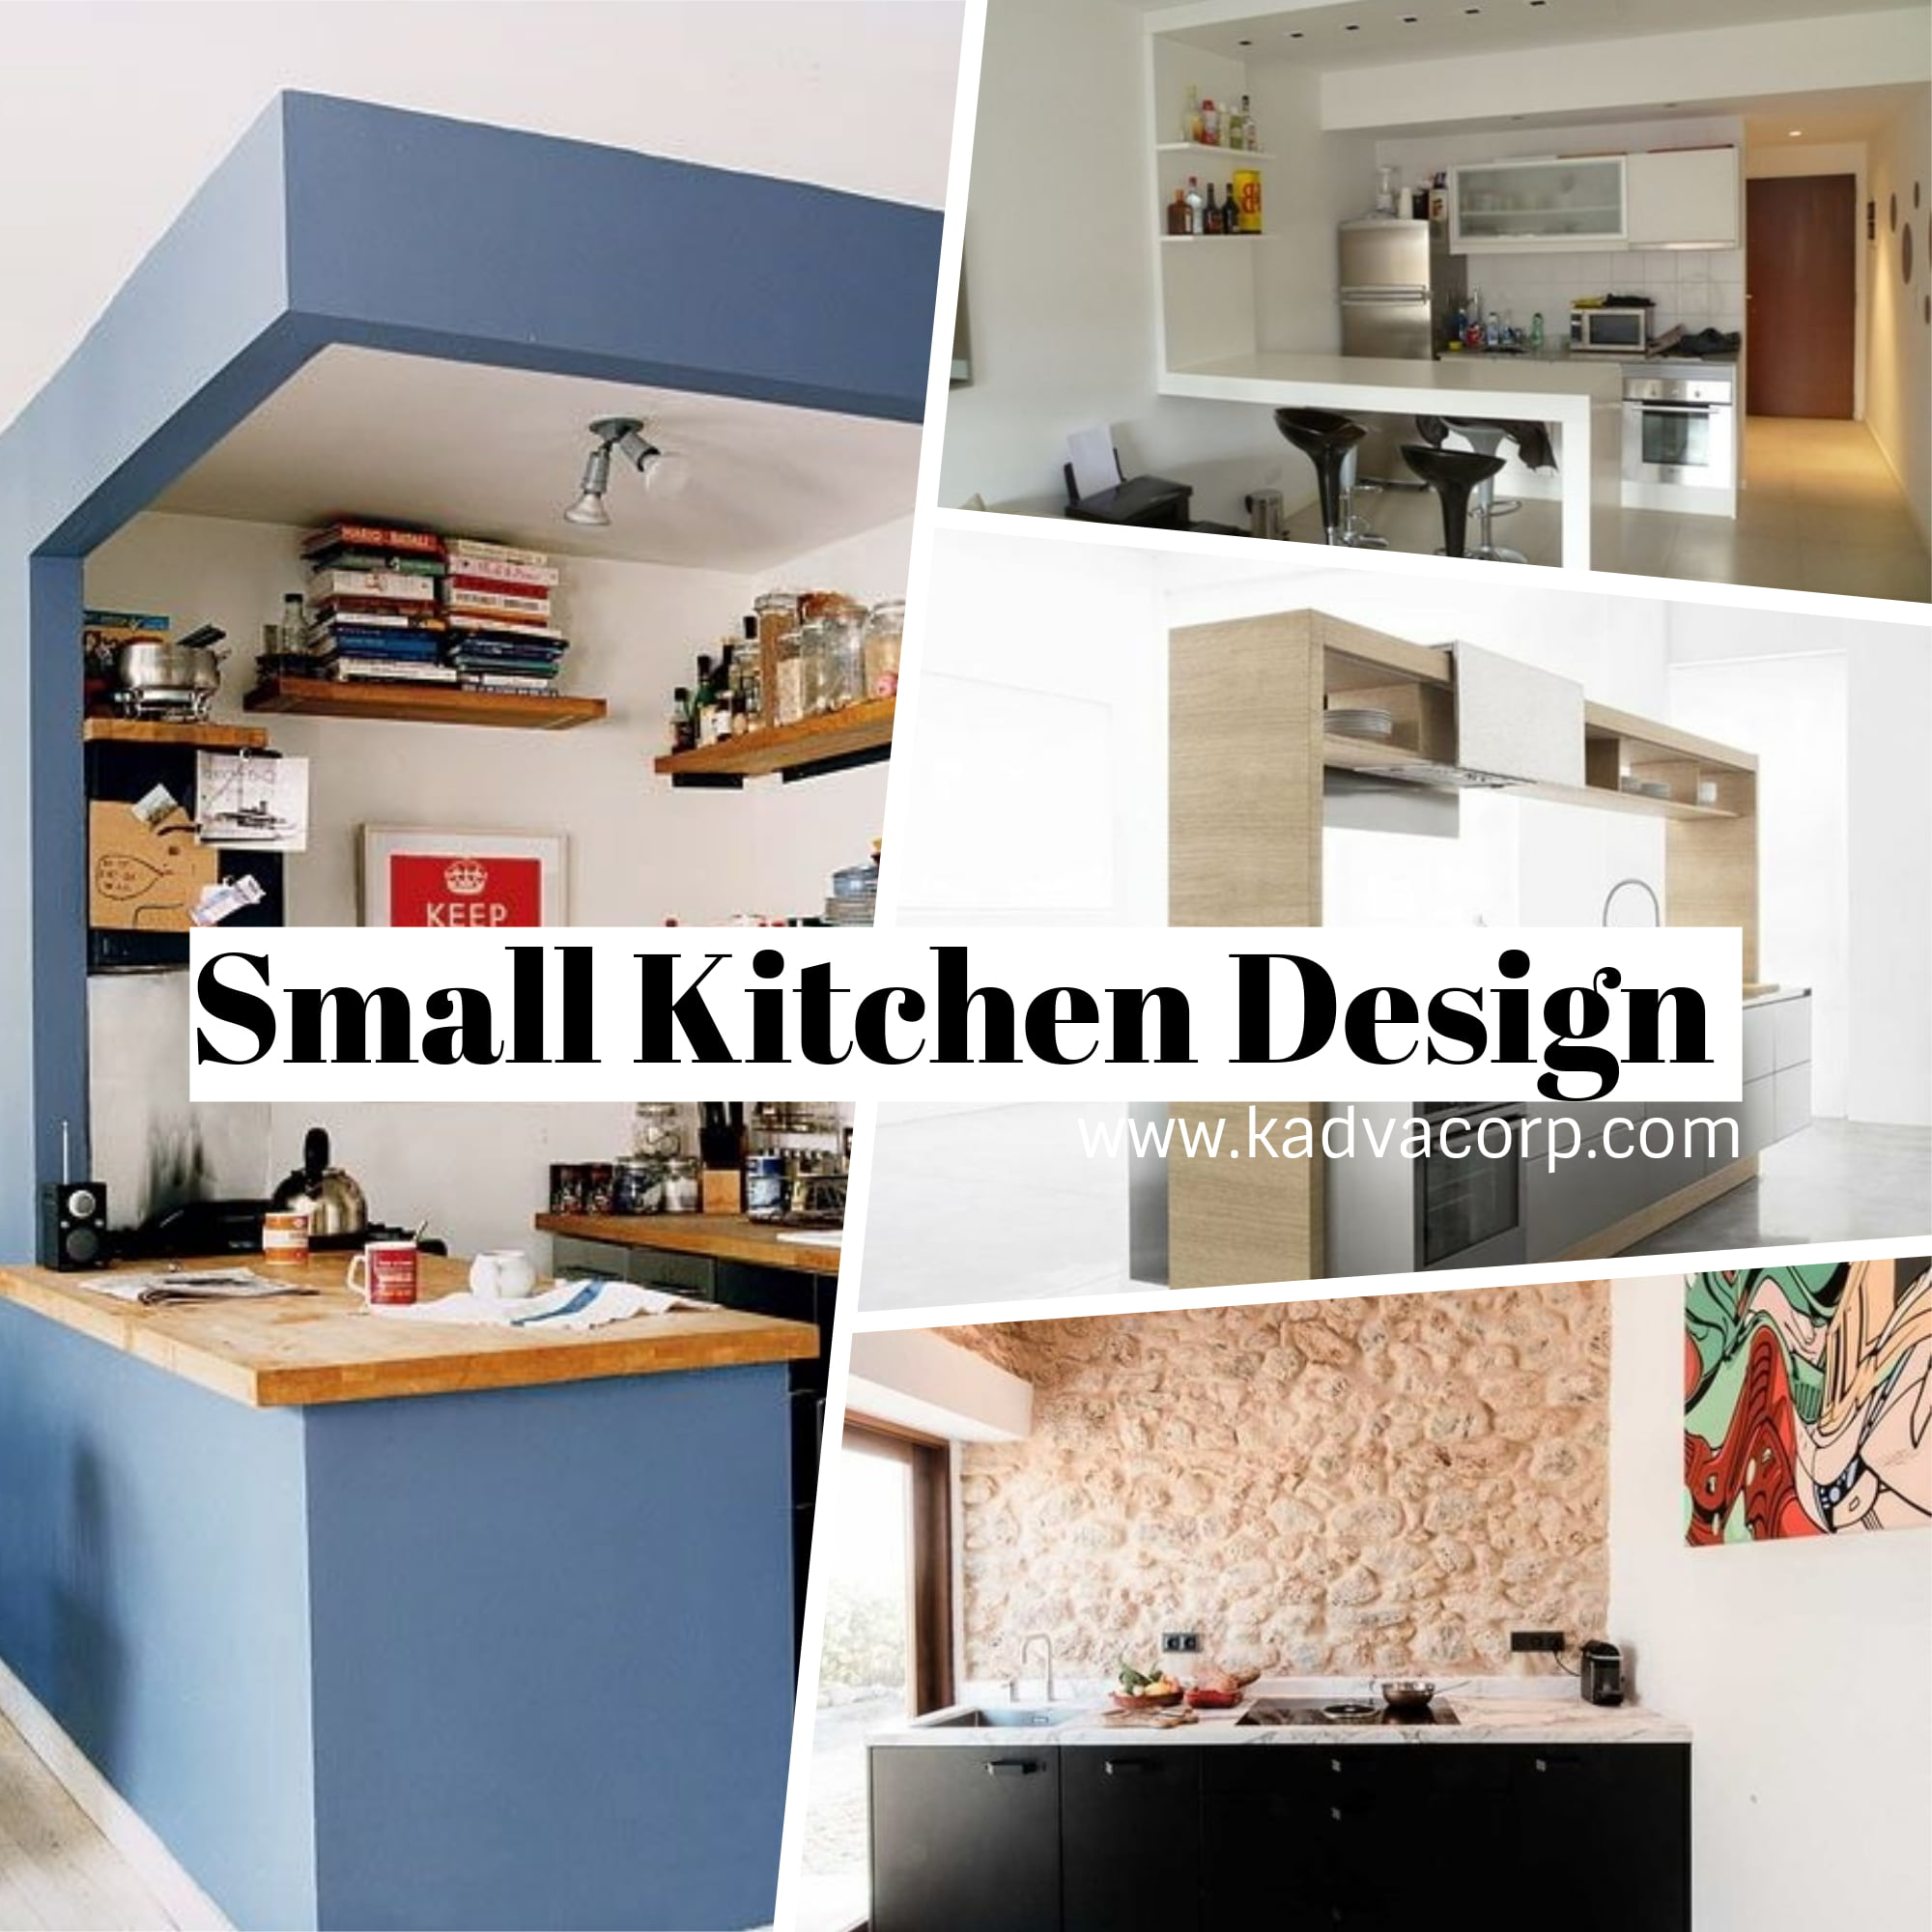 Modern Furniture Small Kitchen Decorating Design Ideas 2011: 100+ Small Kitchen Designs Ideas With Modern Look